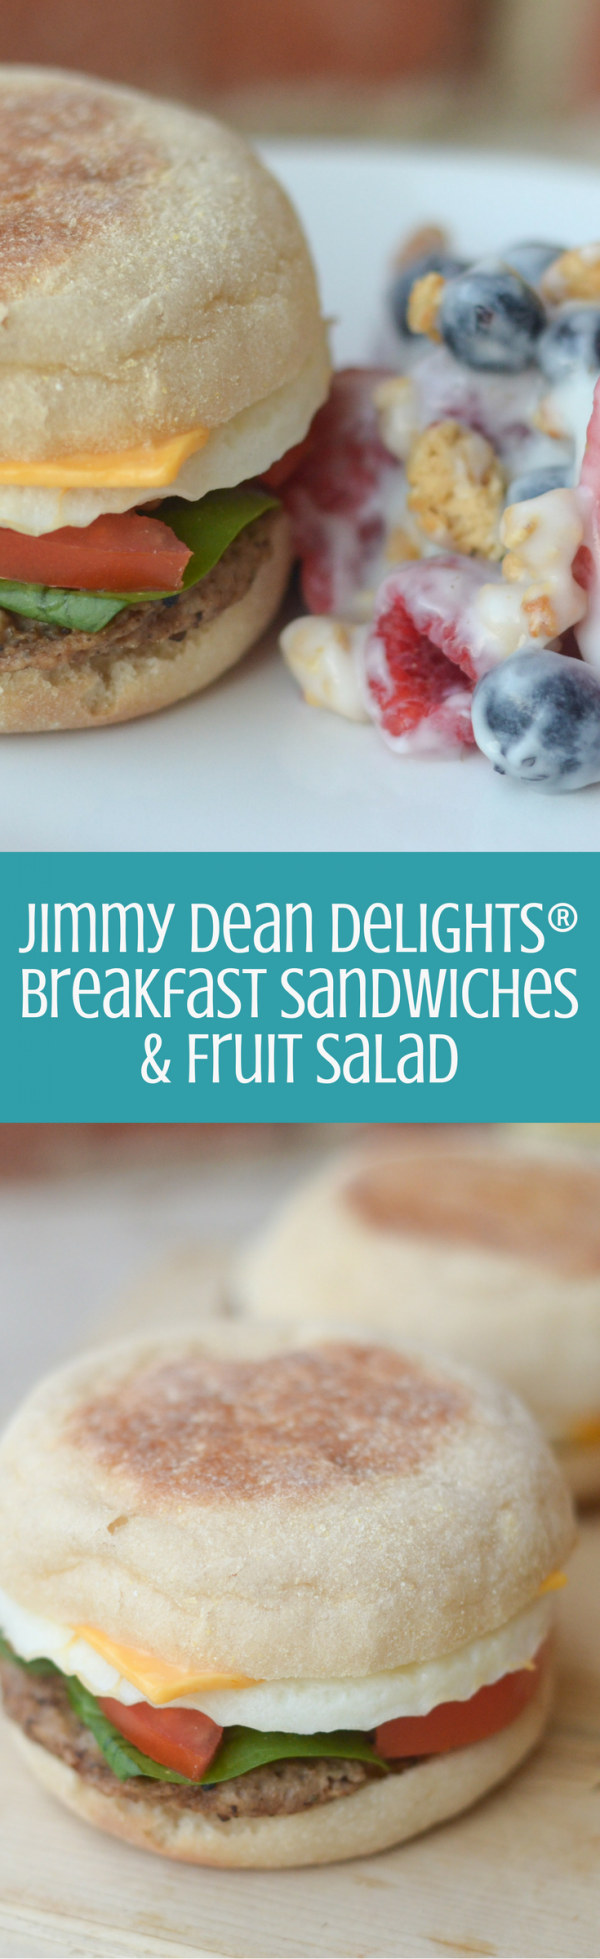 Jimmy Dean Delights Breakfast Sandwiches & Fruit Salad